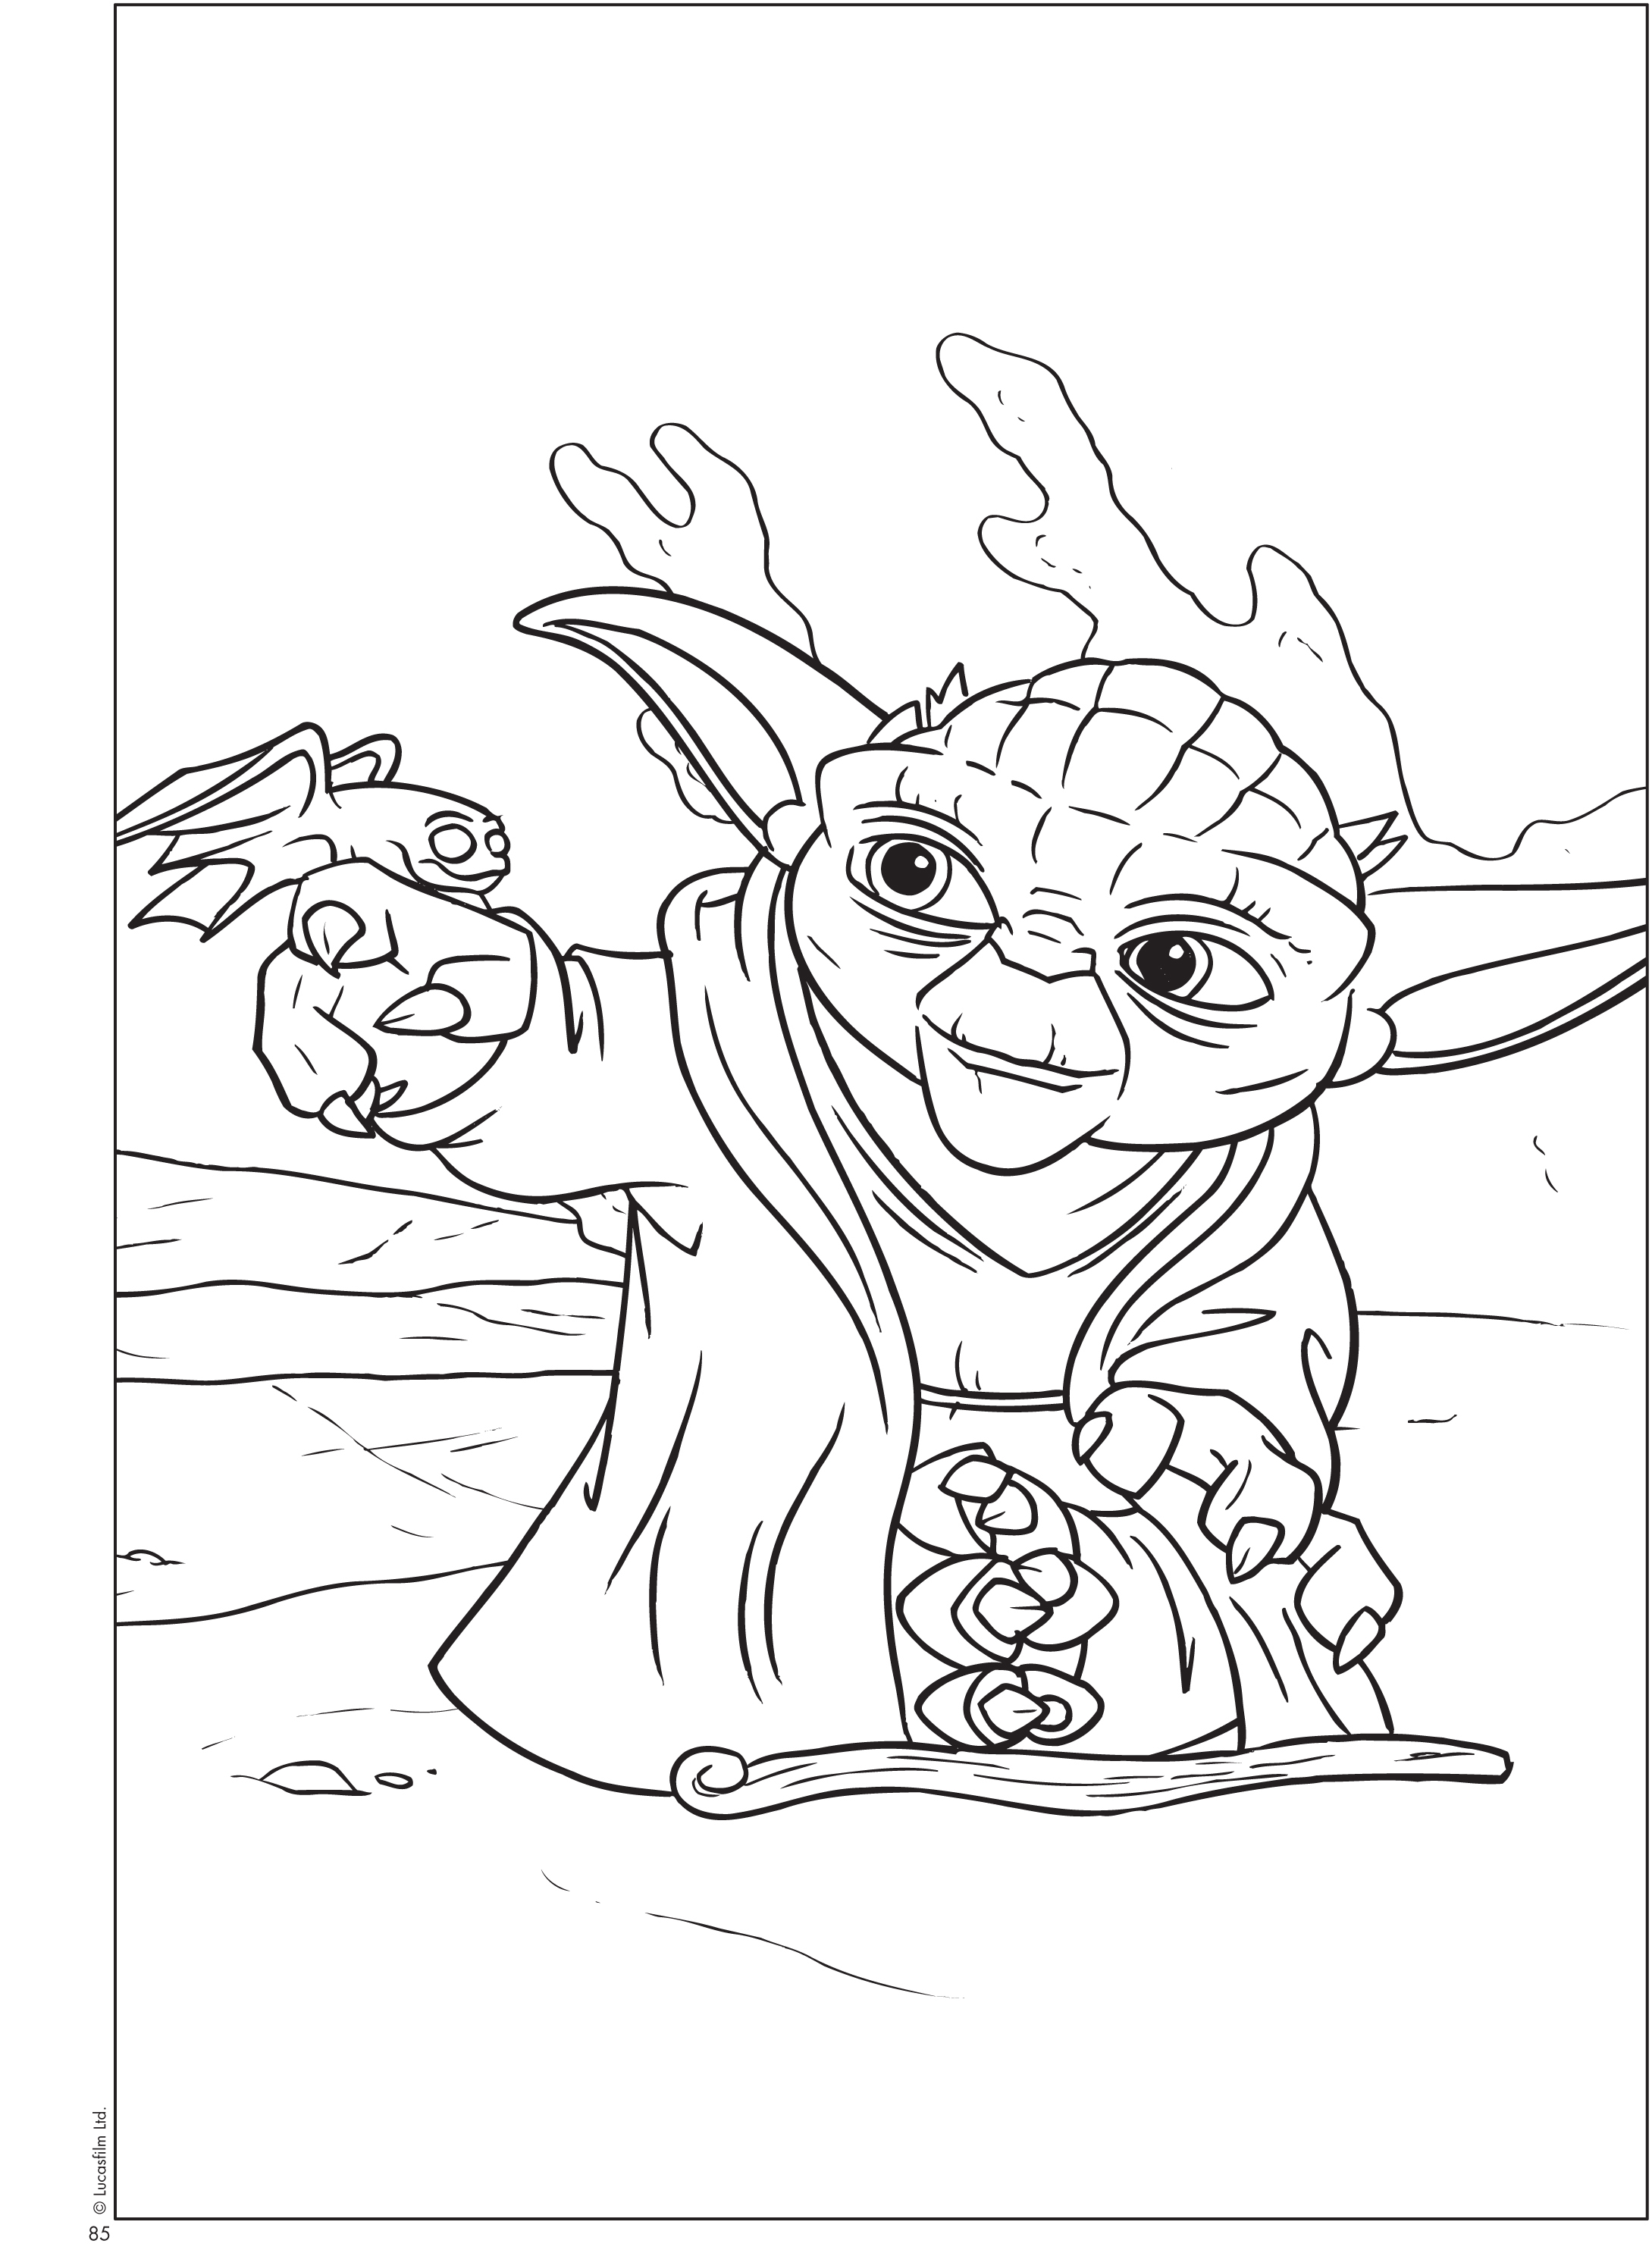 Free Printable Star Wars® Coloring Sheets - Queen Of Free - Free Printable Star Wars Coloring Pages